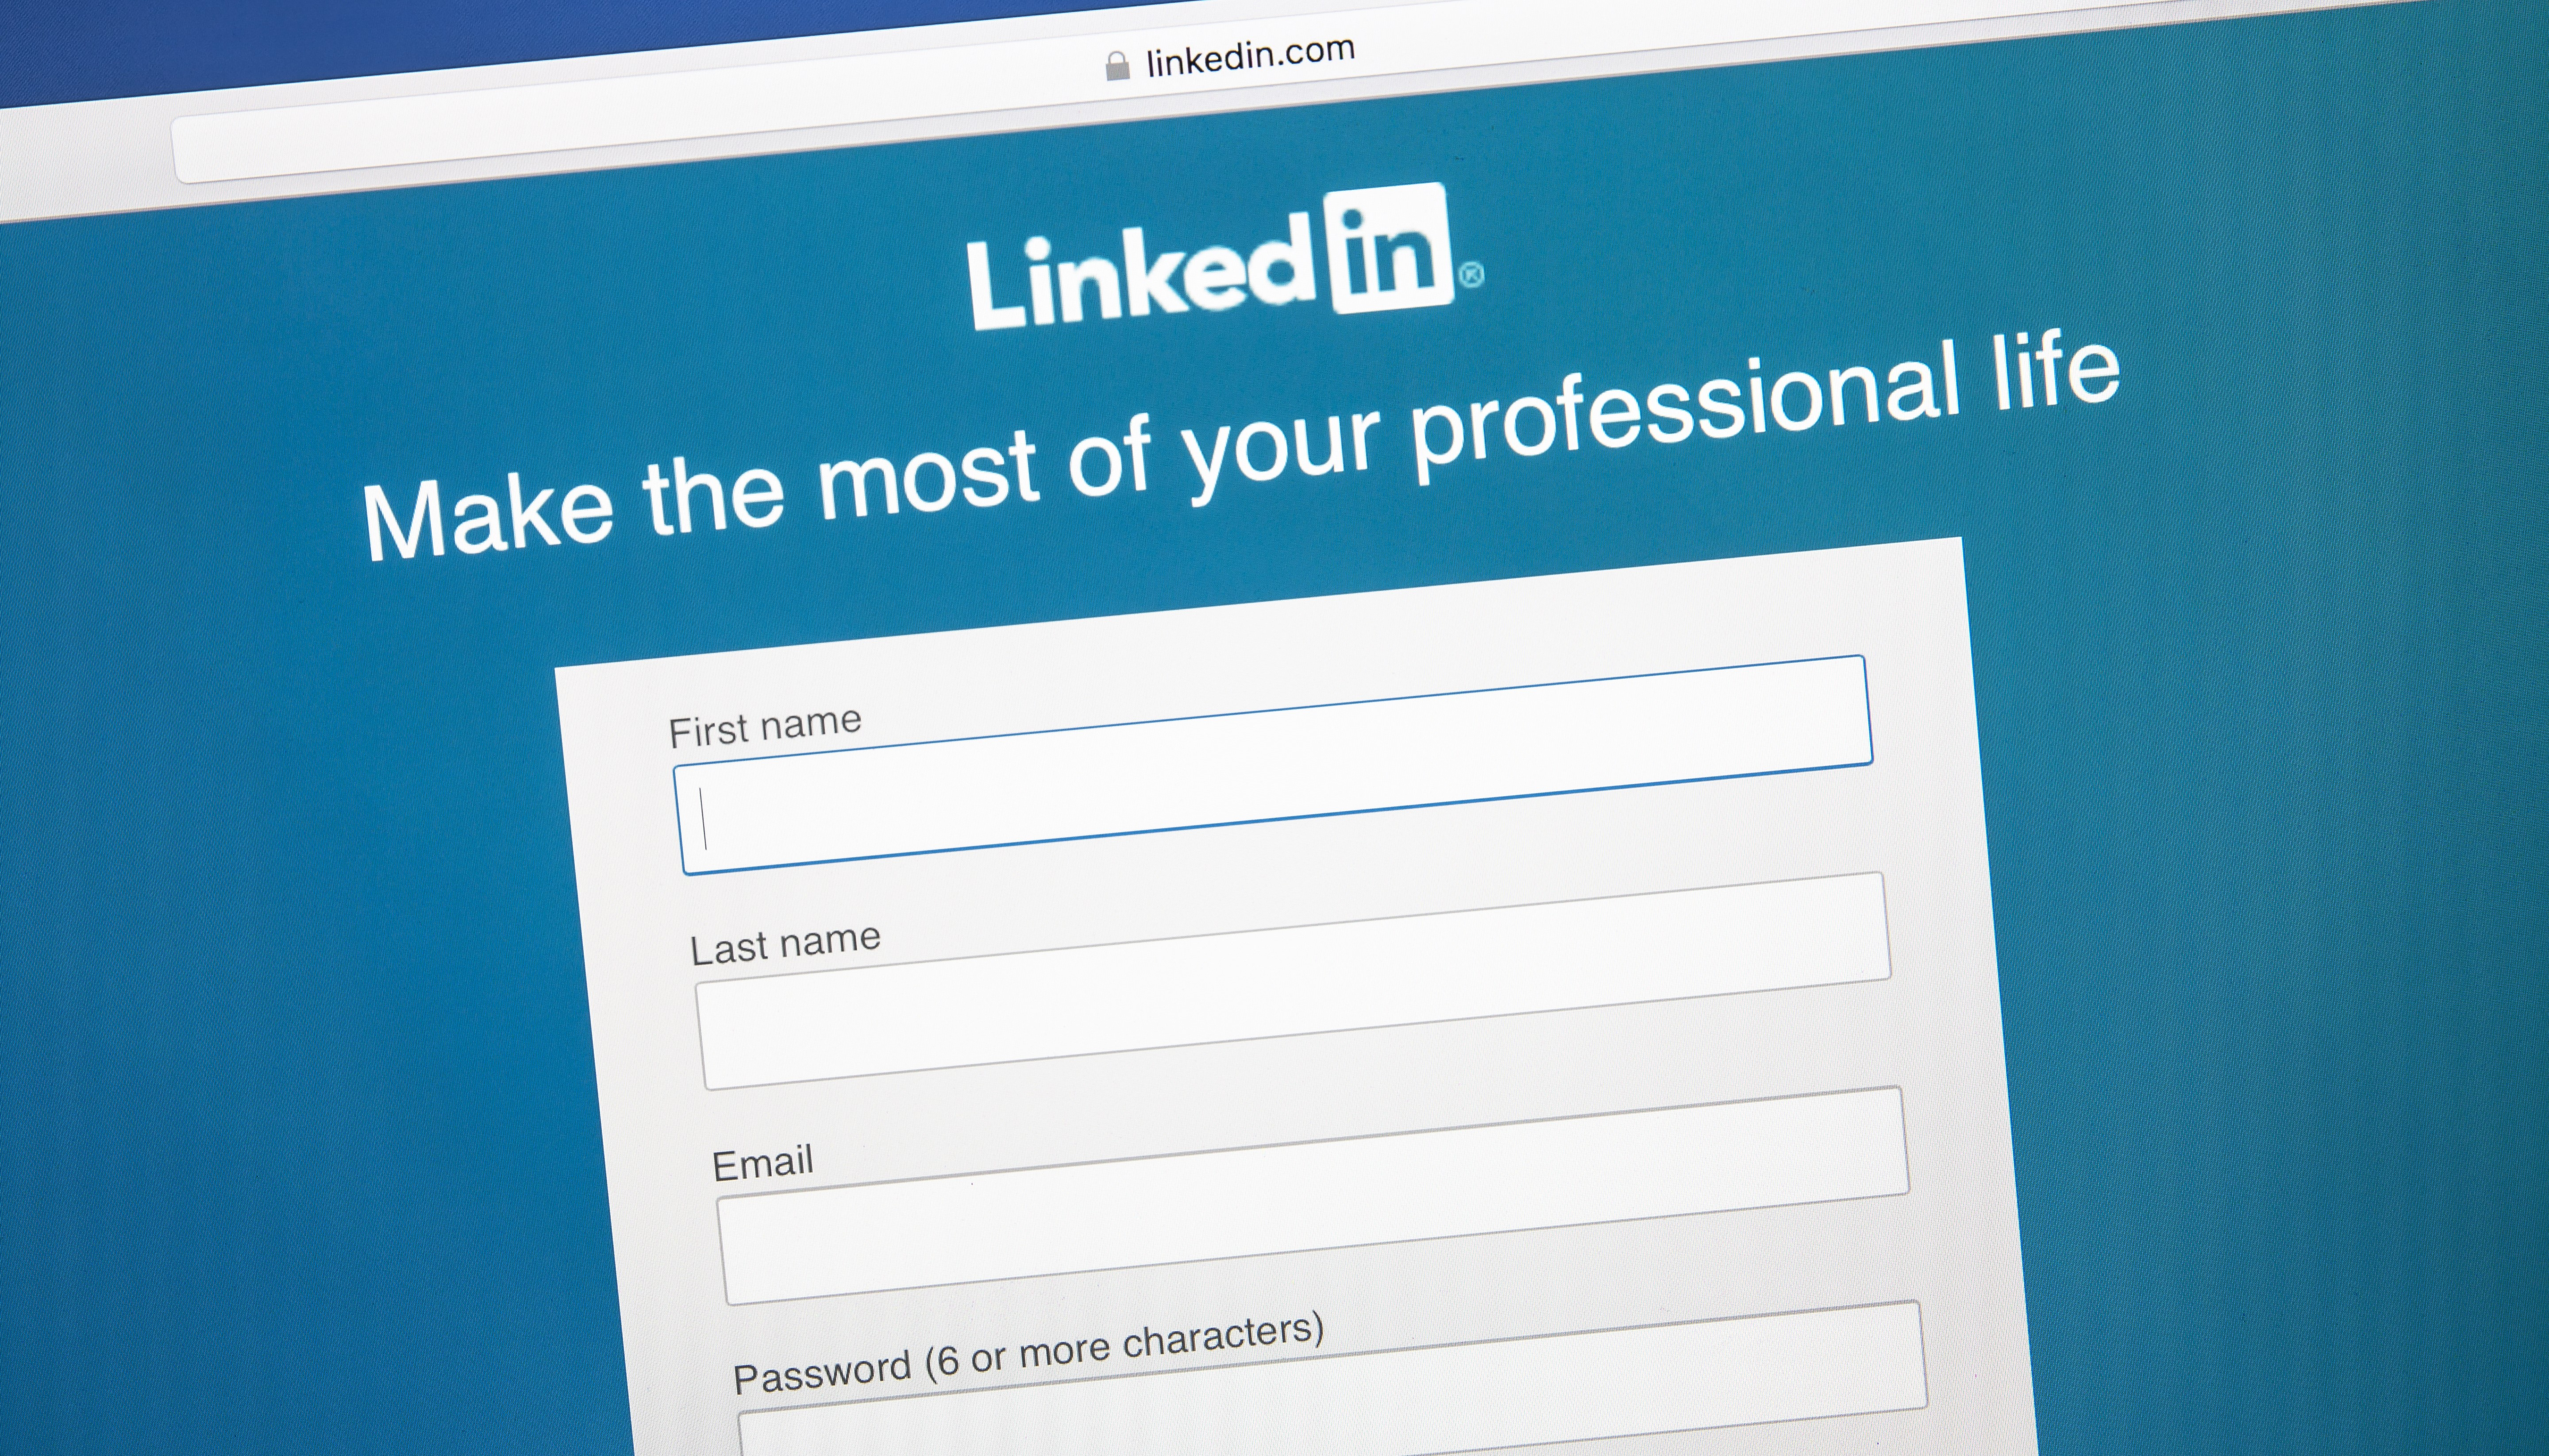 5 tips for your LinkedIn profile